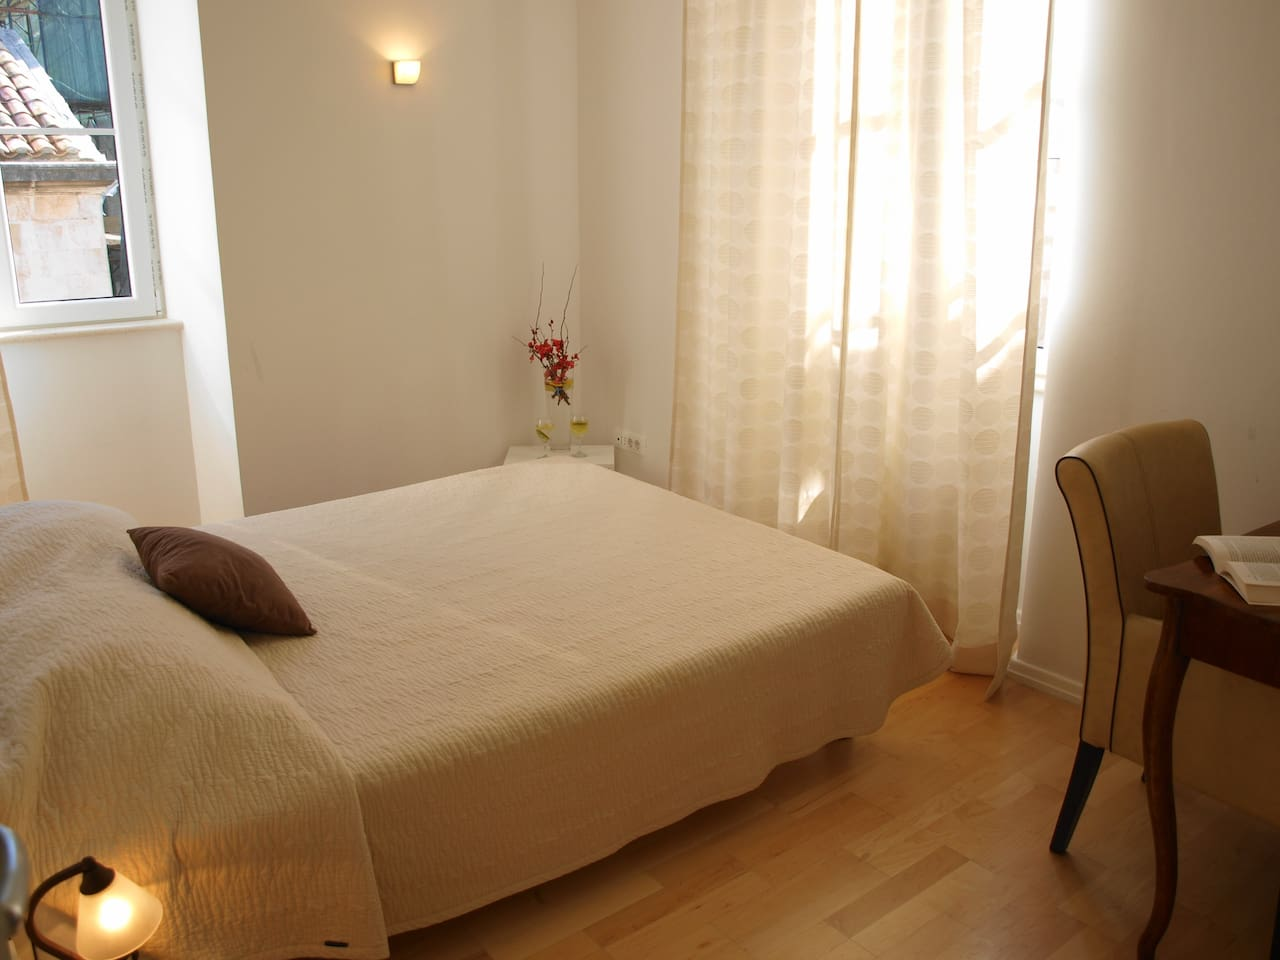 Welcome to Secret IV Apartment in the heart of Dubrovnik Old Town! The main bedroom with large windows to full the room with sunlight